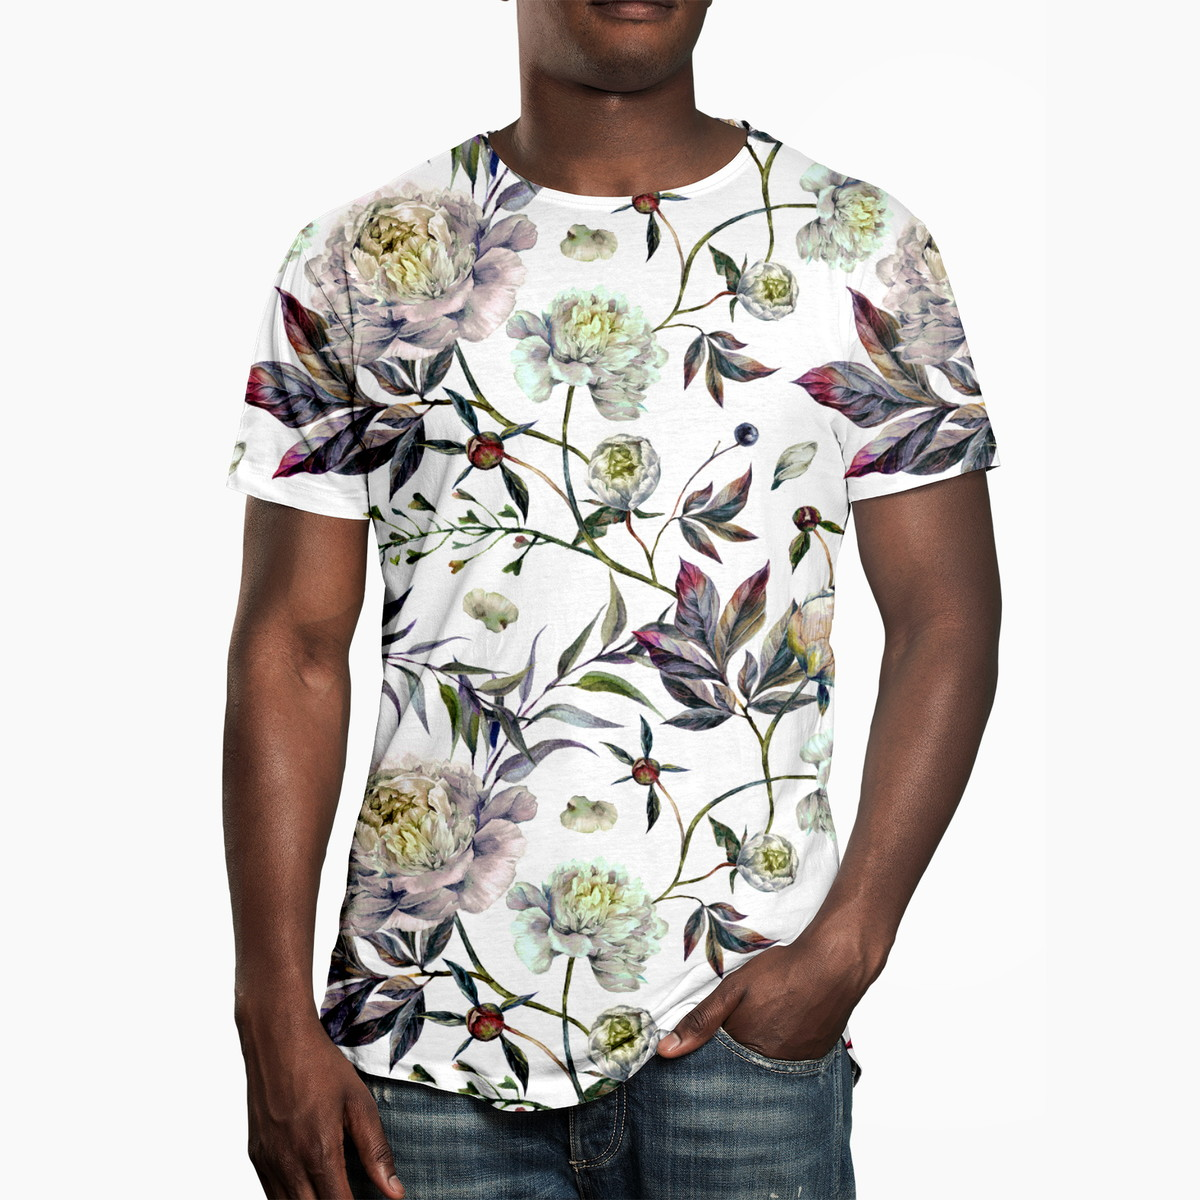 3c20ea9b1 Camiseta Masculina Floral Aquarela Estampa Digital no Elo7